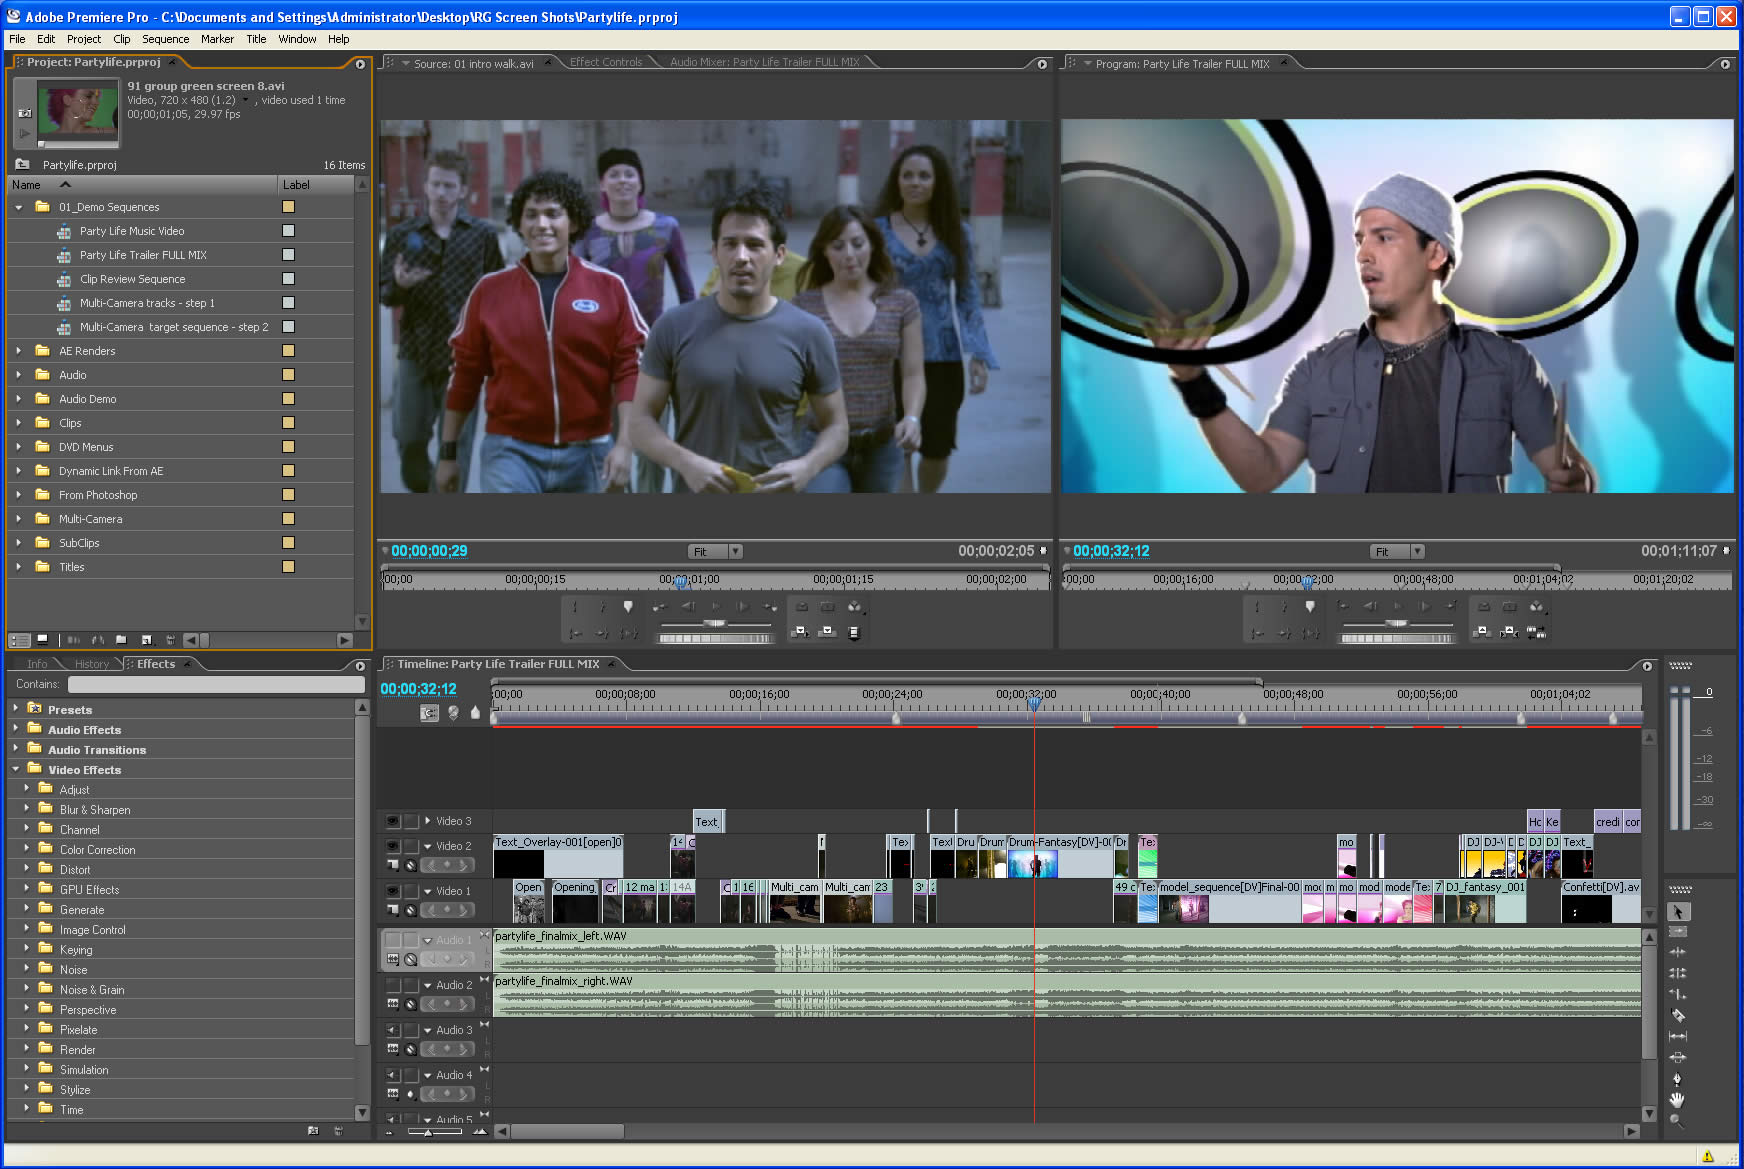 Adobe premiere pro latest version with crack